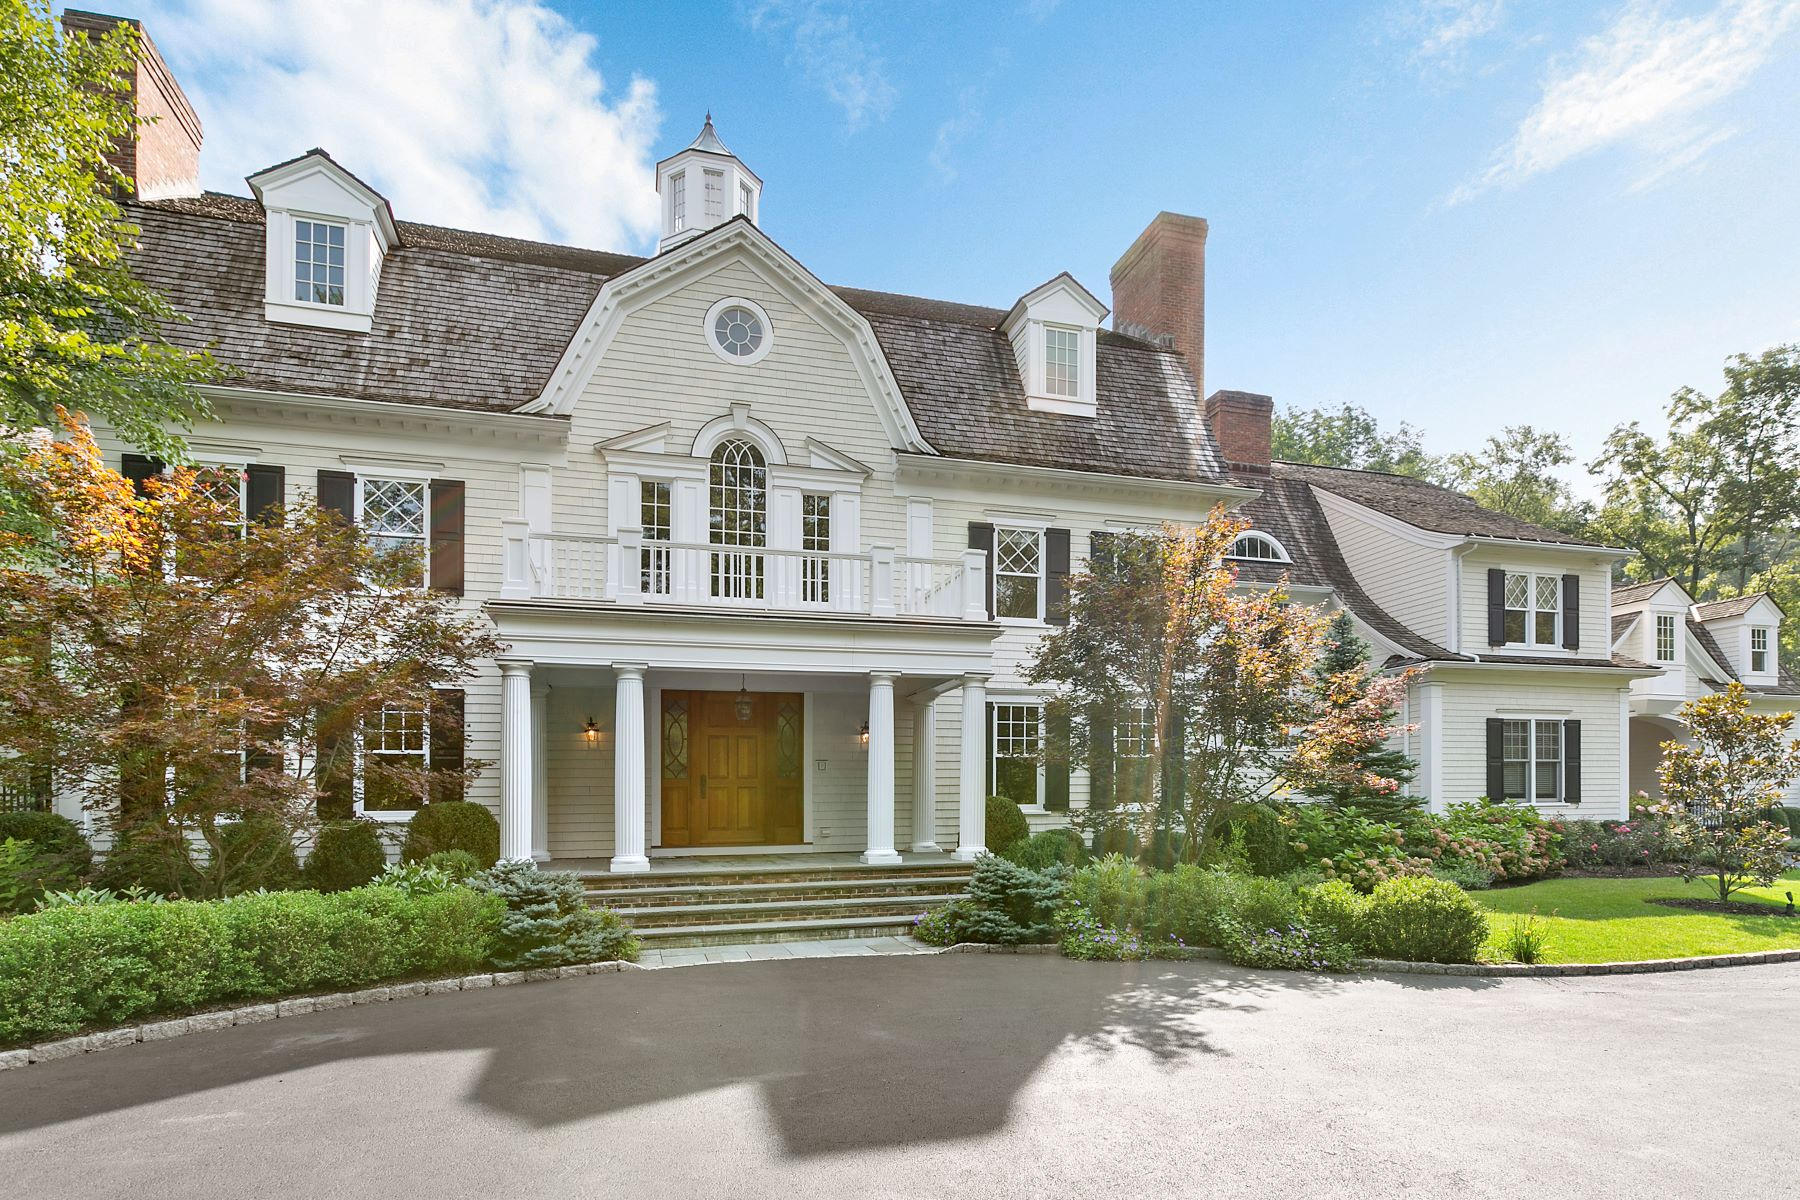 Maison unifamiliale pour l Vente à Beautiful Estate Home with Wow Factor 56 Sarles Street Armonk, New York 10504 États-Unis